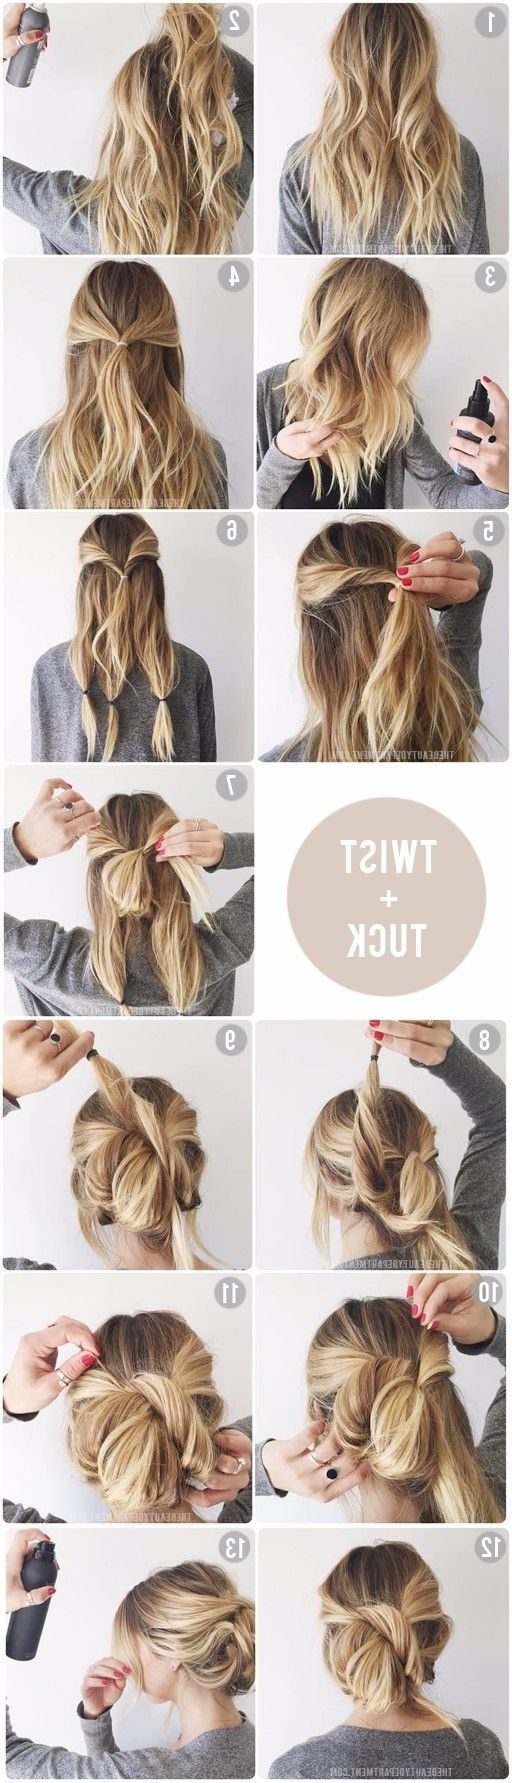 Perfectly Imperfect Messy Hair Updos For Regarding 2018 Messy Wedding Hairstyles For Long Hair (View 10 of 15)